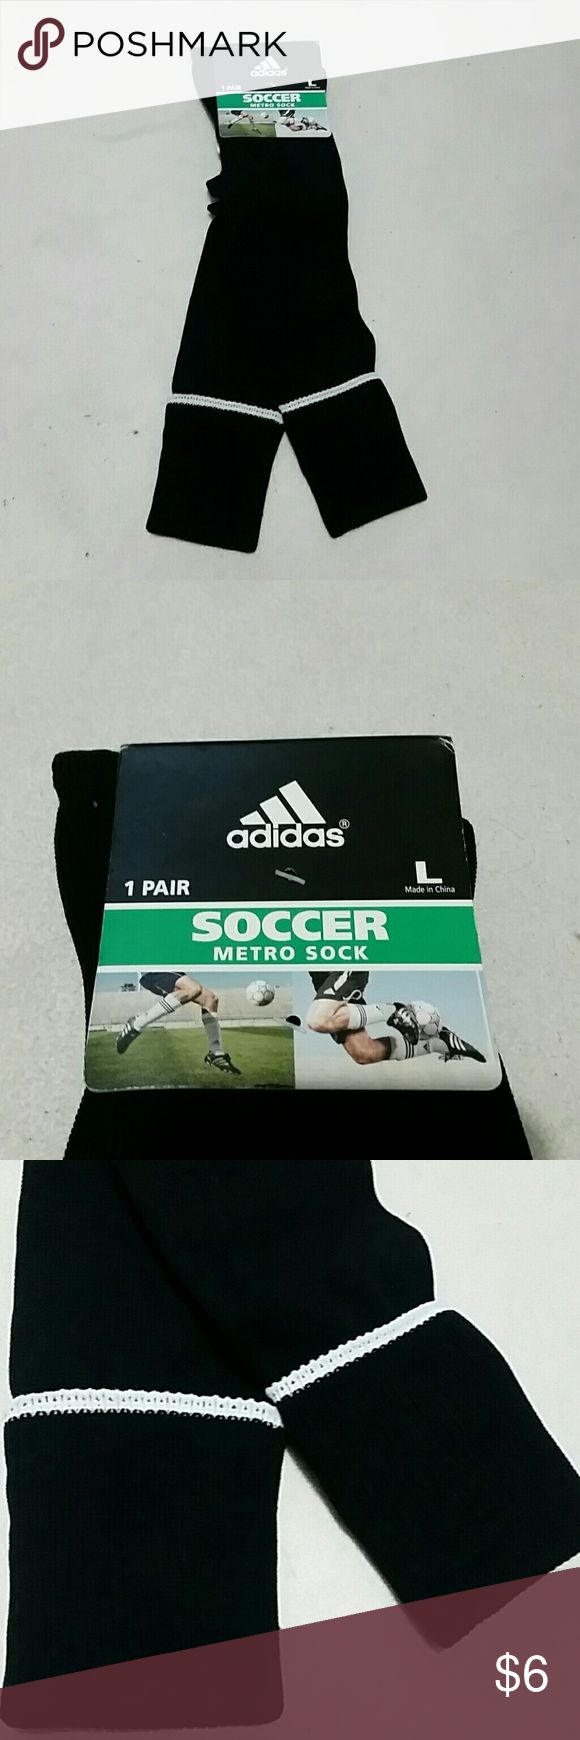 Unisex Metro Soccer Socks 1 pair of soccer socks. Lightweight construction for a closer fit.Compression zone for arch and for stability. Mens & Womens.98% nylon 2% natural latex. Adidas Underwear & Socks Athletic Socks